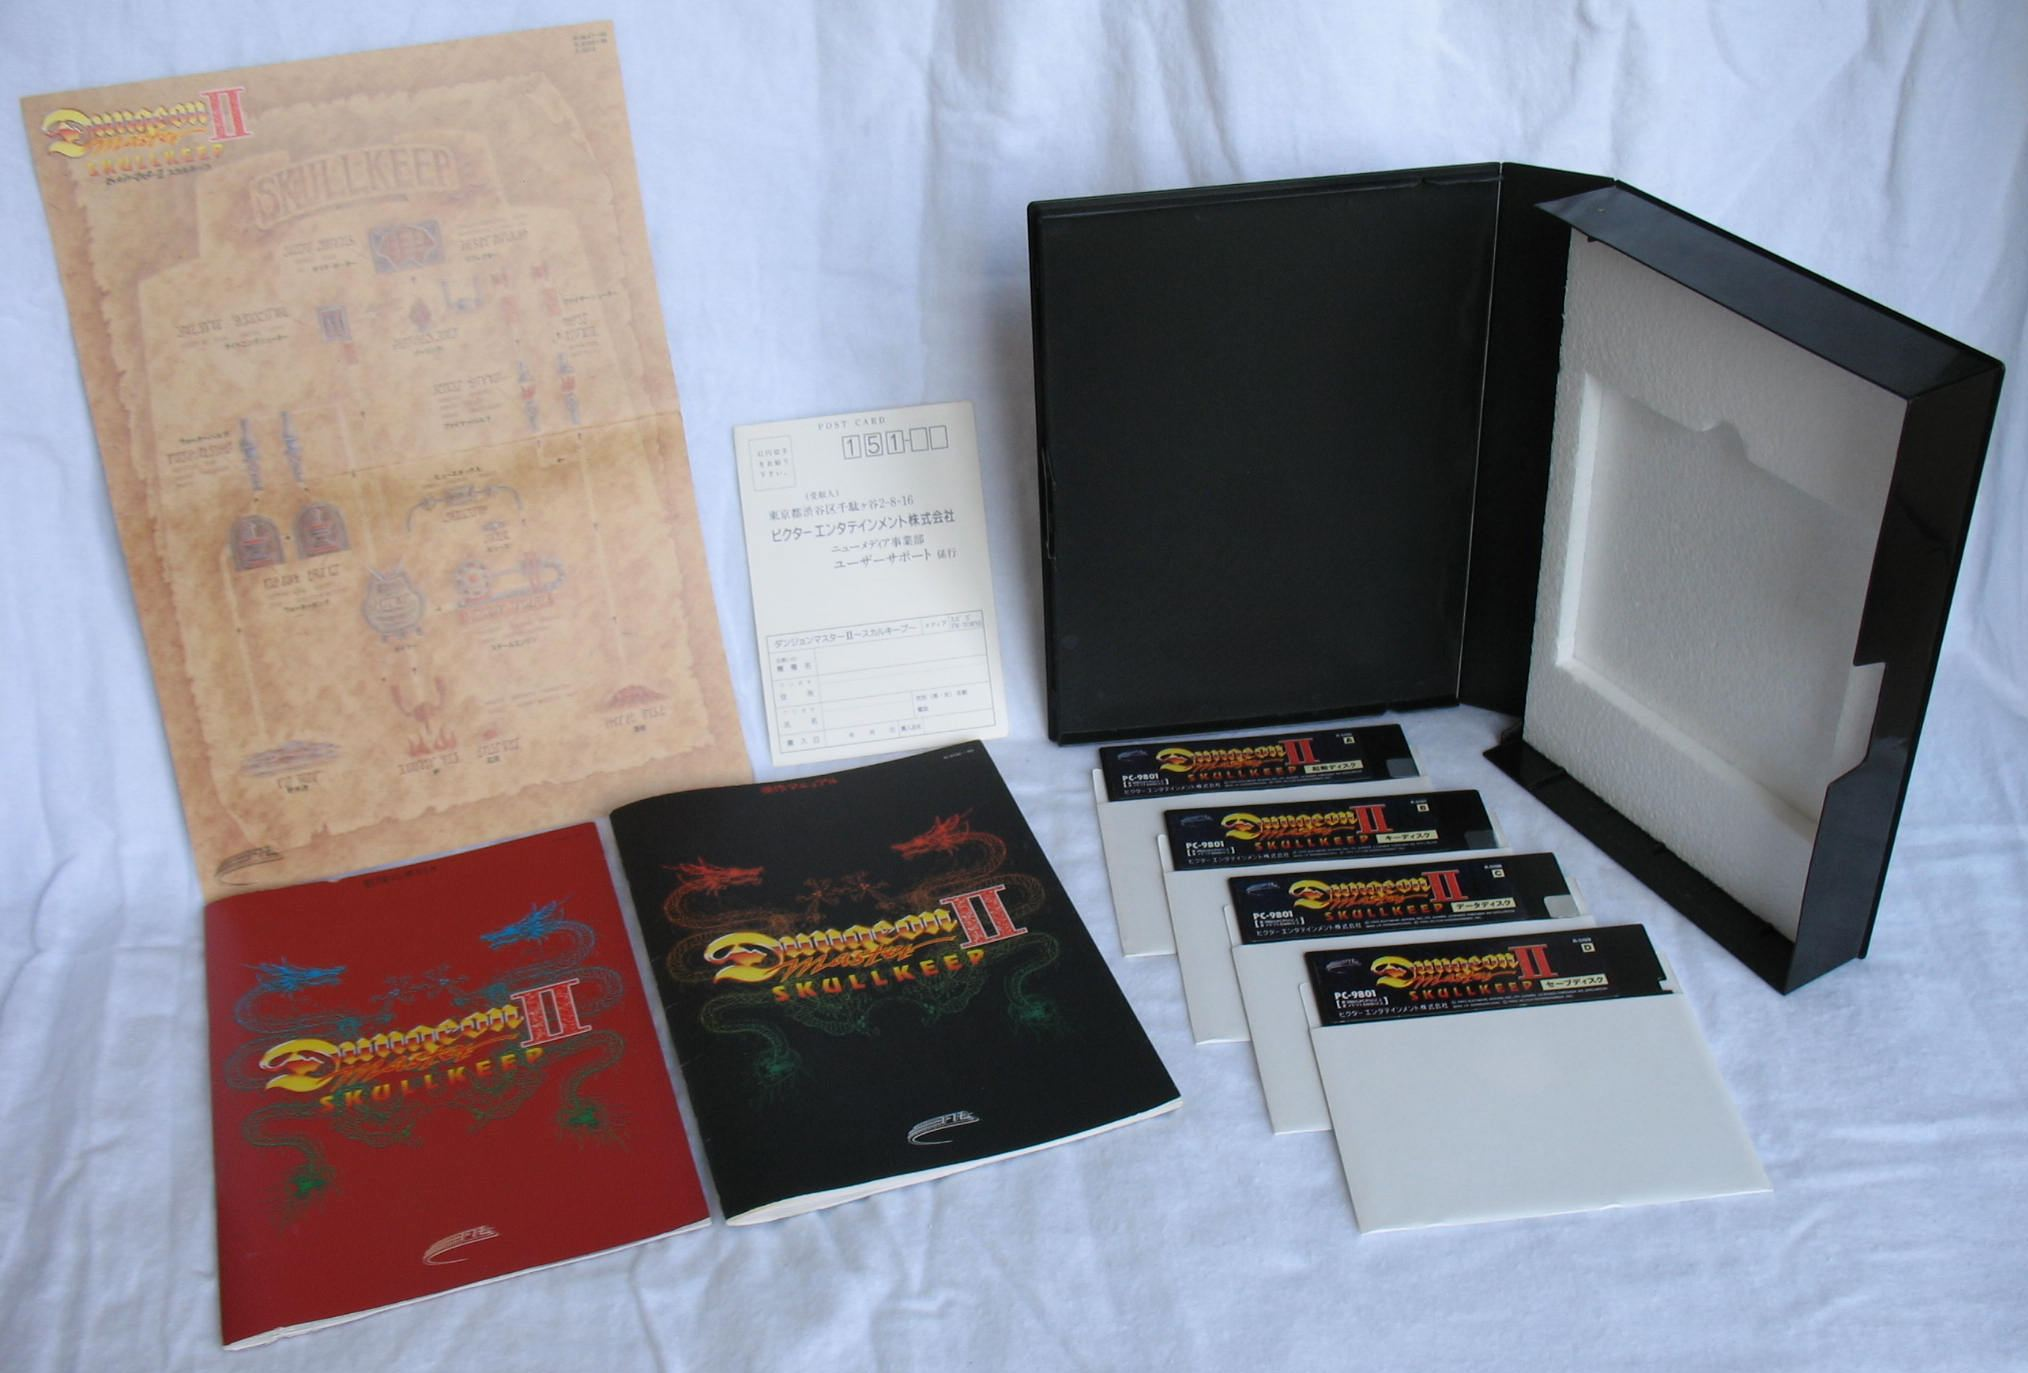 Game - Dungeon Master II - JP - PC-9801 - 5.25-inch - All - Overview - Photo